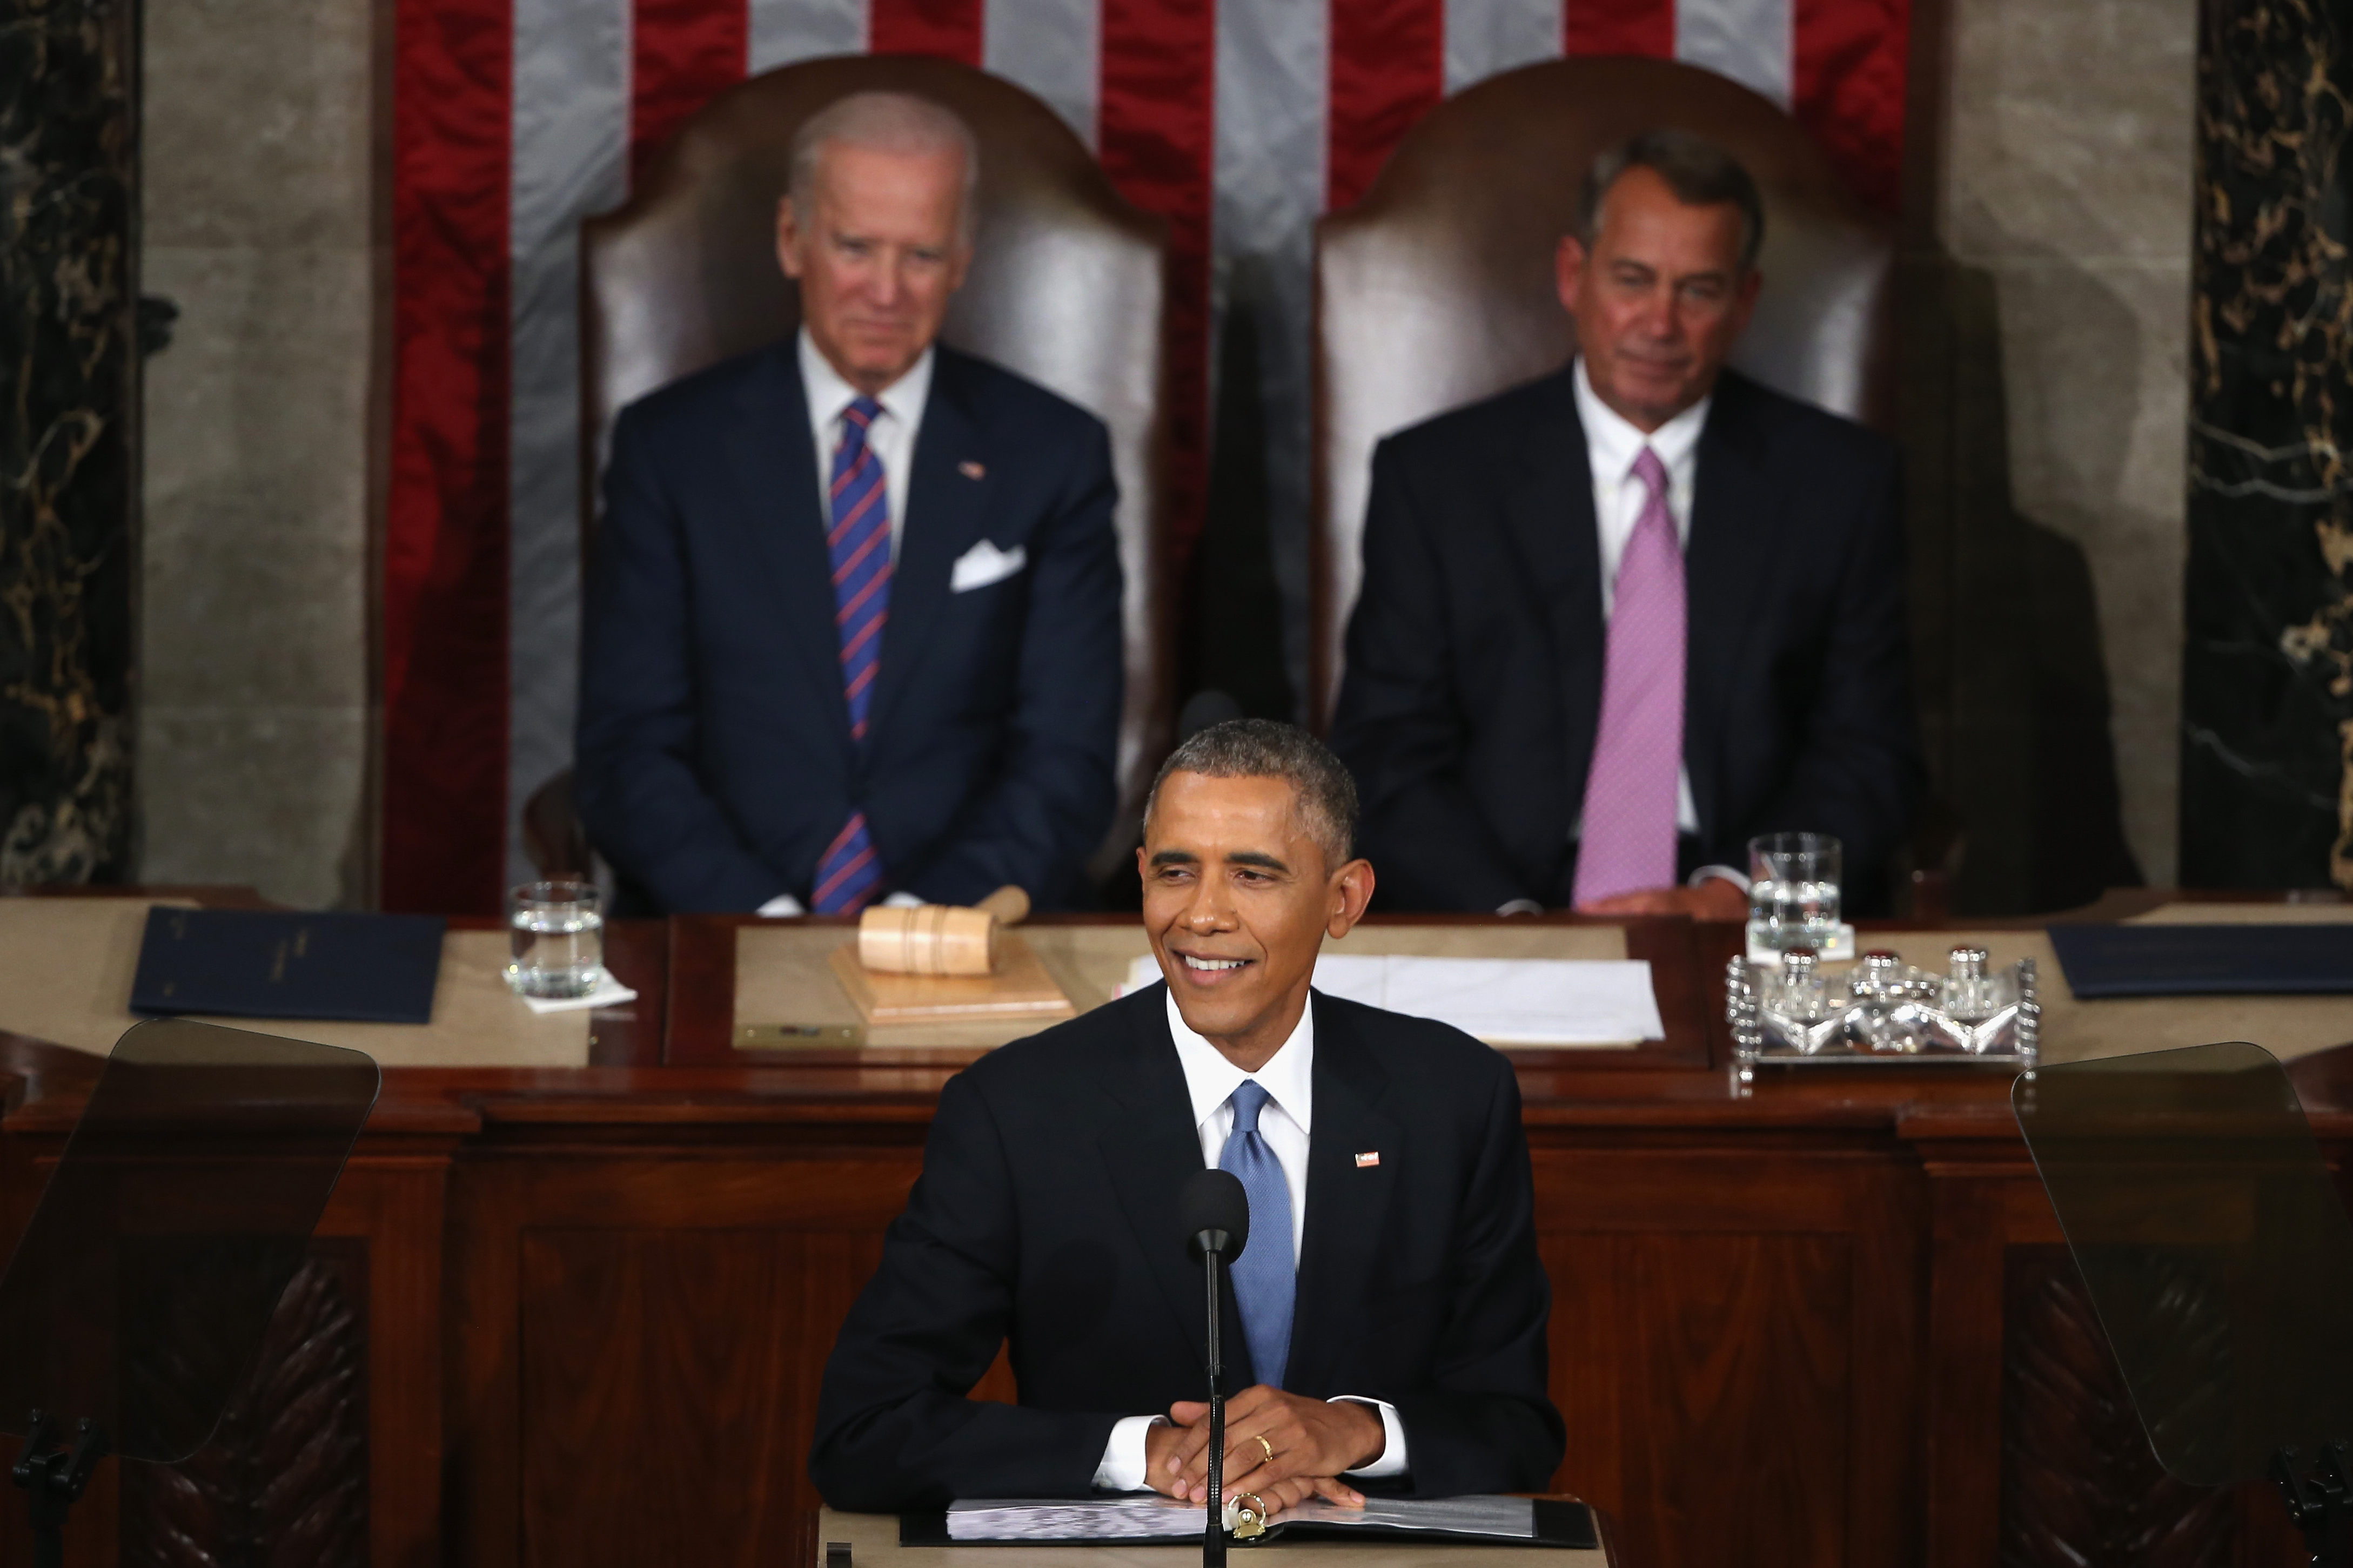 Obama's Final State Of The Union Set For Jan. 12